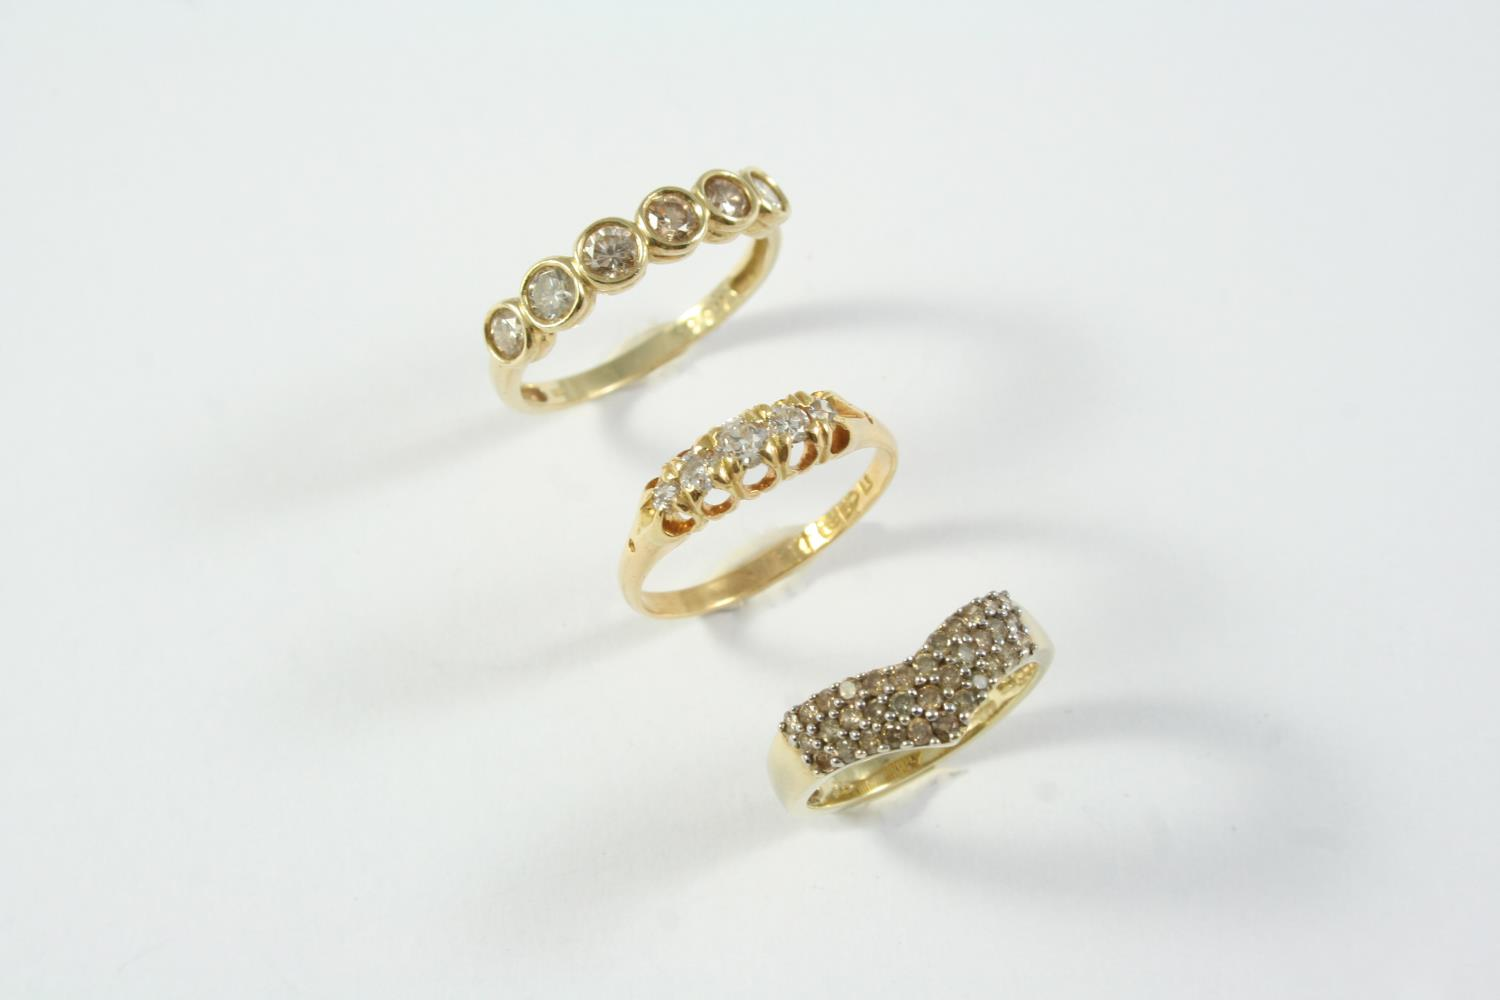 A DIAMOND FIVE STONE RING set with five graduated circular-cut diamonds, in 18ct gold, size O 1/